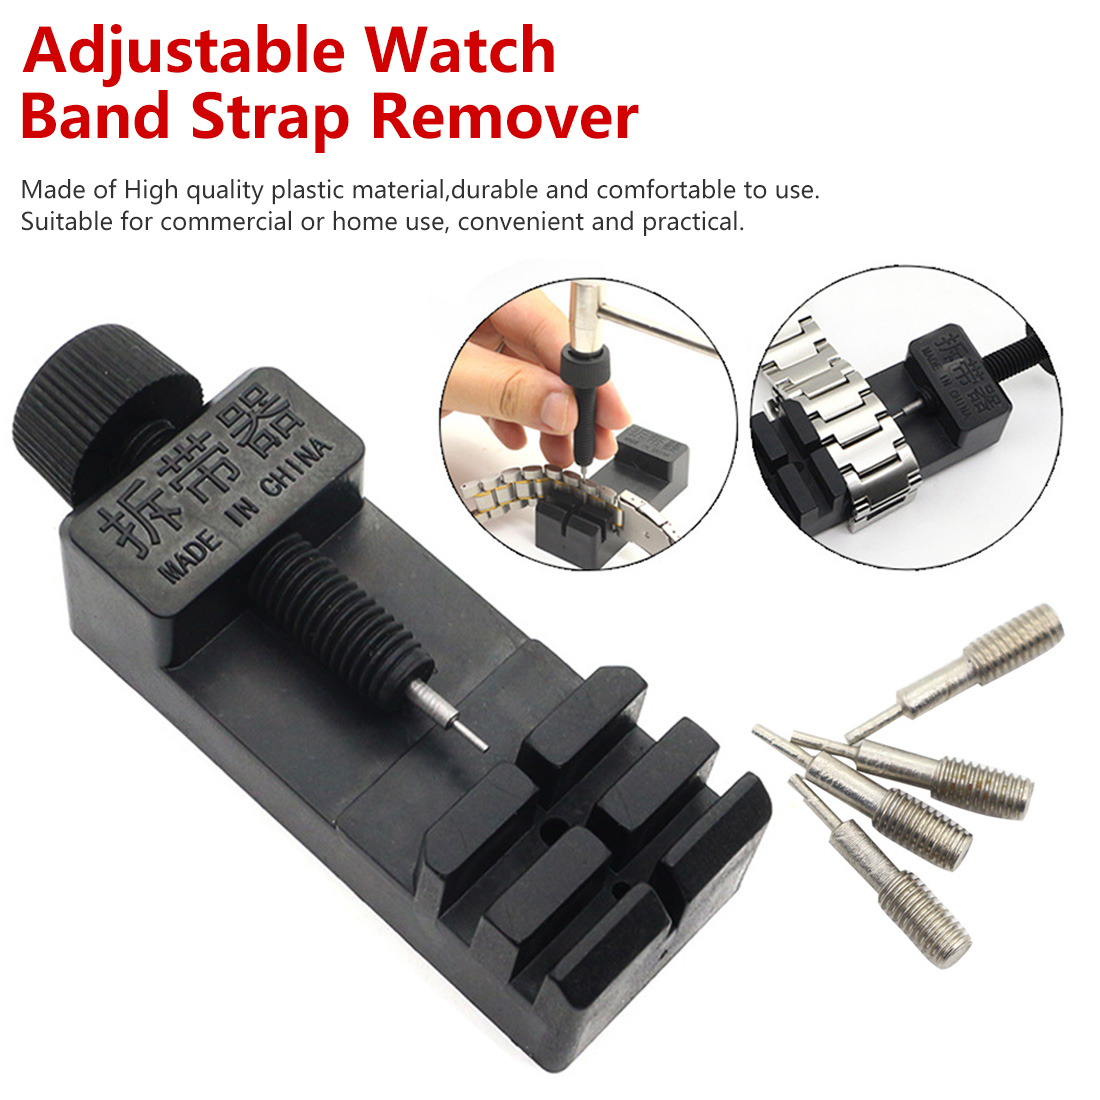 For Men/Women Watch  Link Adjust Slit Strap Bracelet Chain Pin Remover Adjuster Repair Tool Kit Watch Band